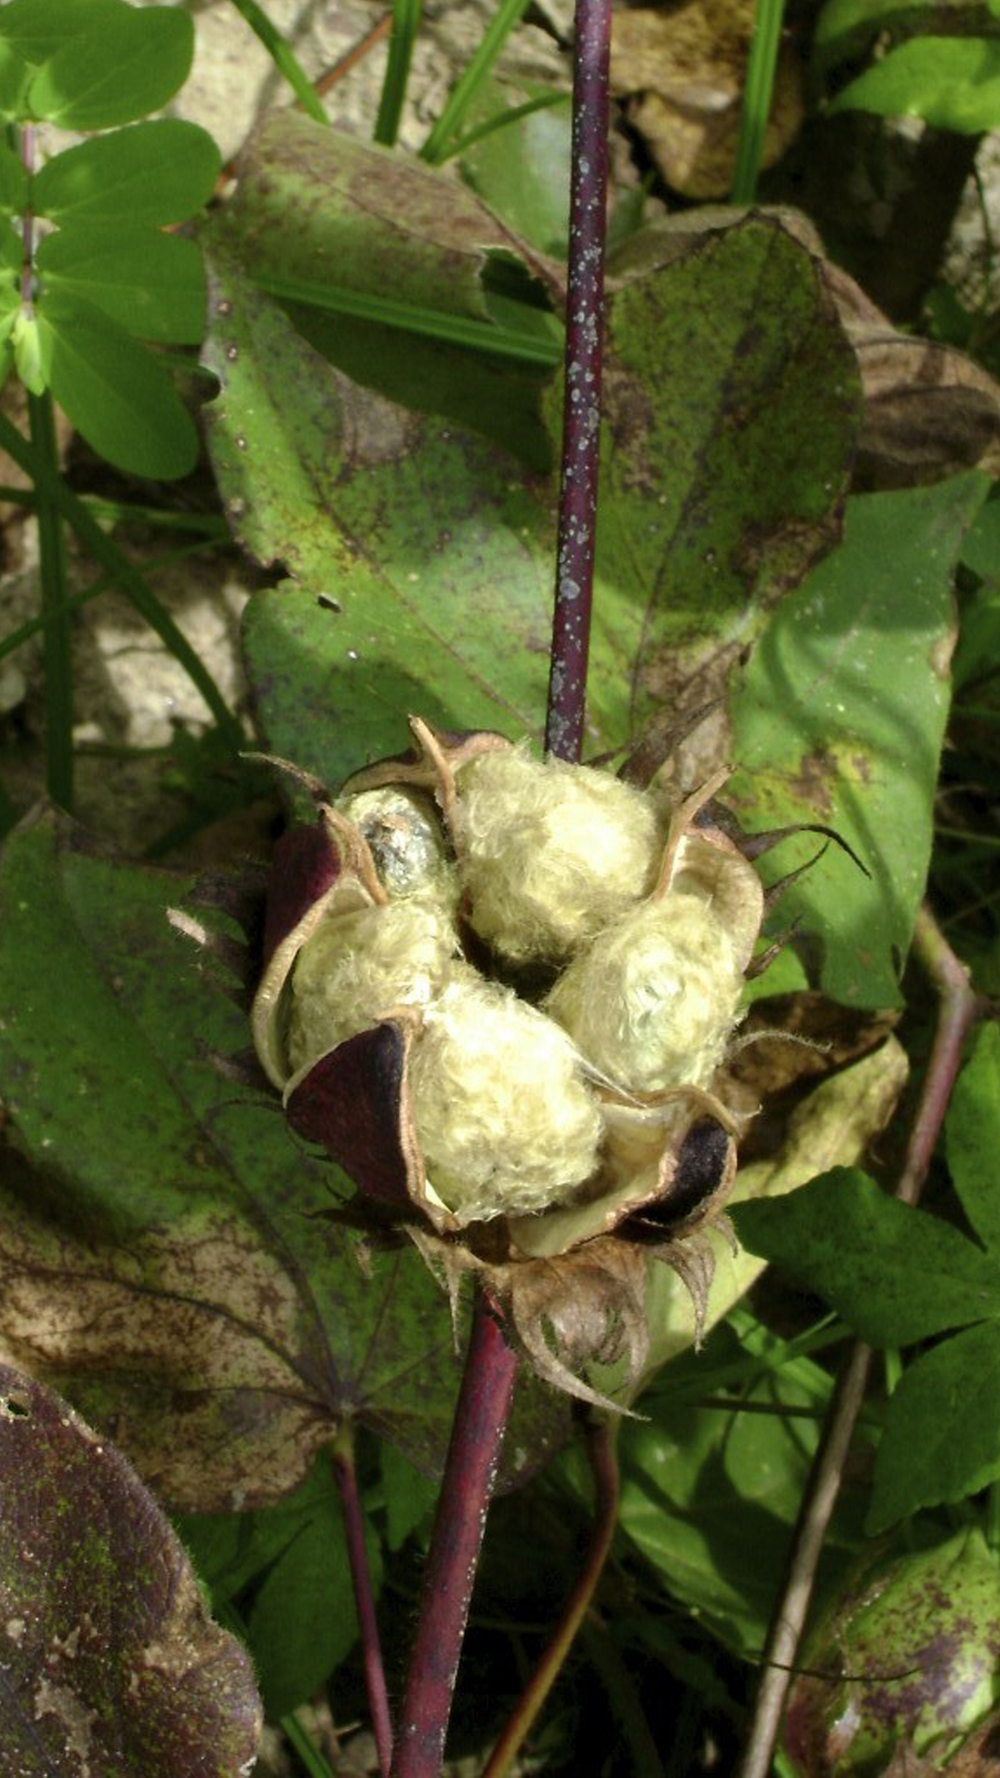 THE NATIVE COTTON PLANT